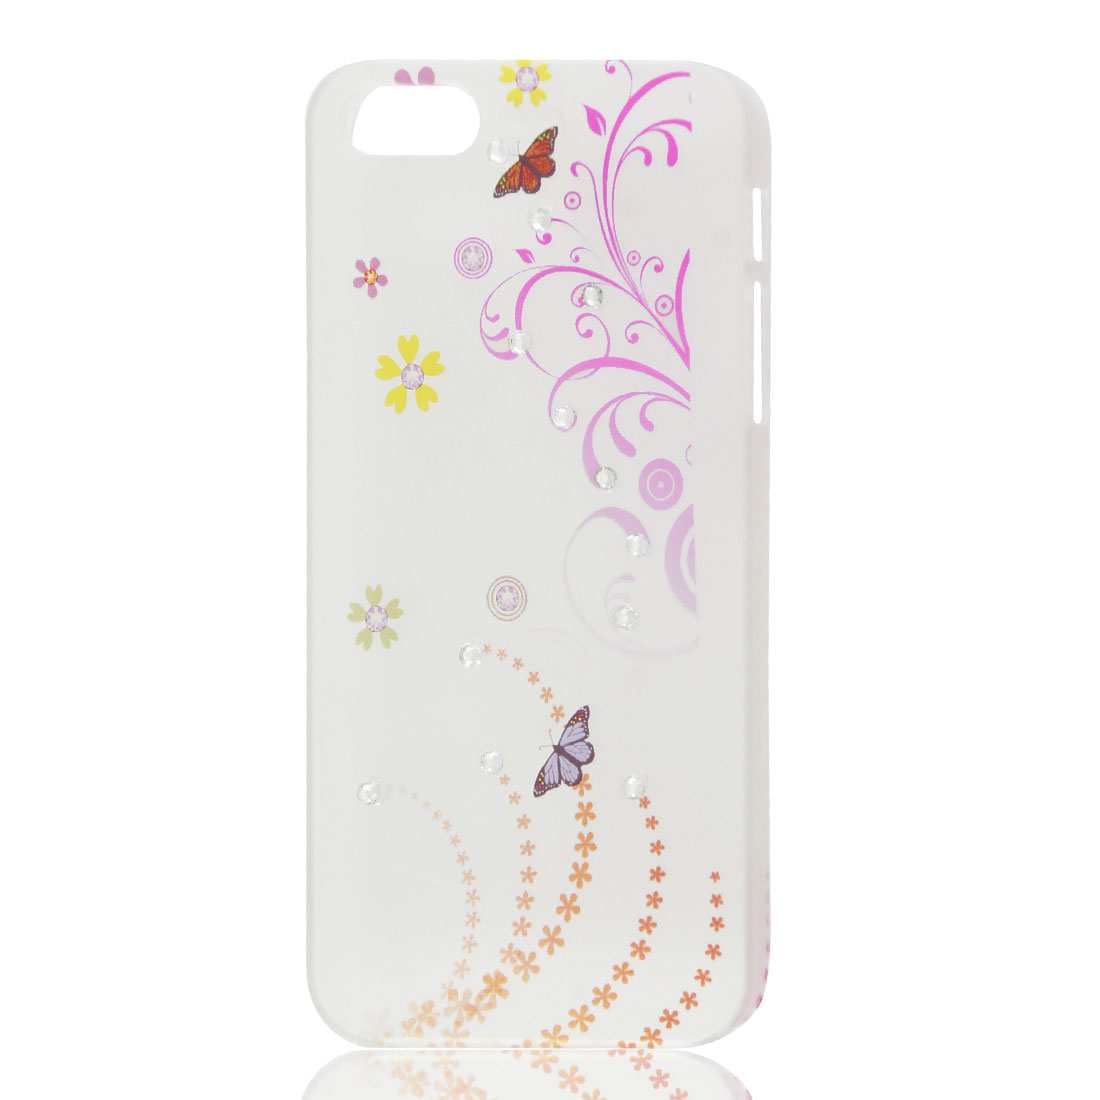 Multicolor Flower Butterfly Bling Rhinestone Hard Back Case Cover for iPhone 5 5G